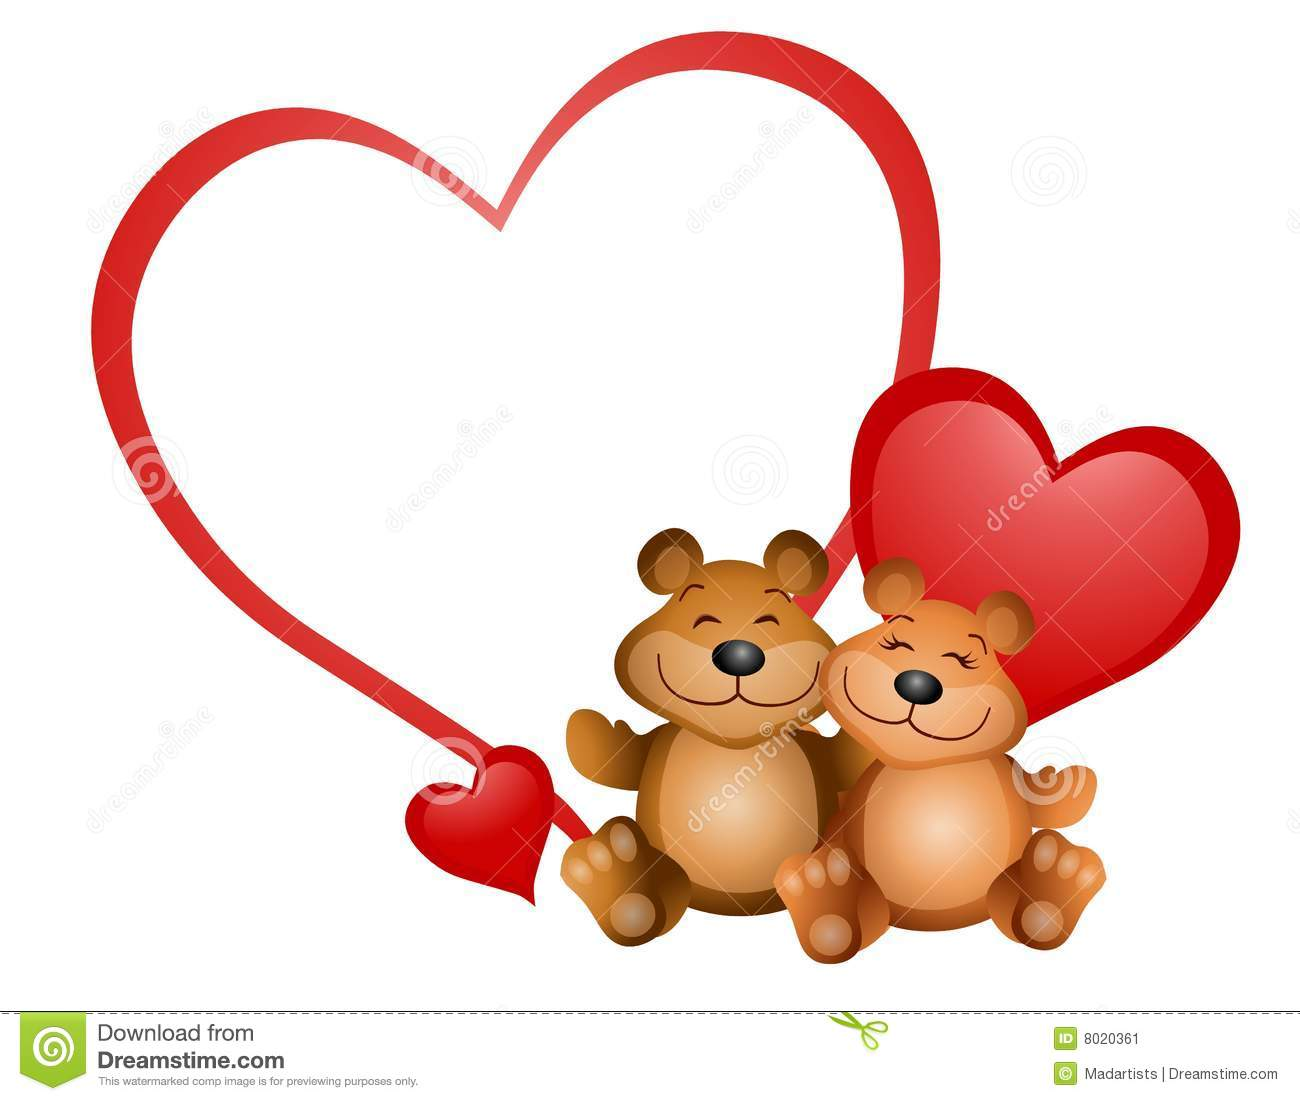 Cute bear valentine clipart graphic freeuse Cute Valentine Bear Clipart - Clipart Kid graphic freeuse